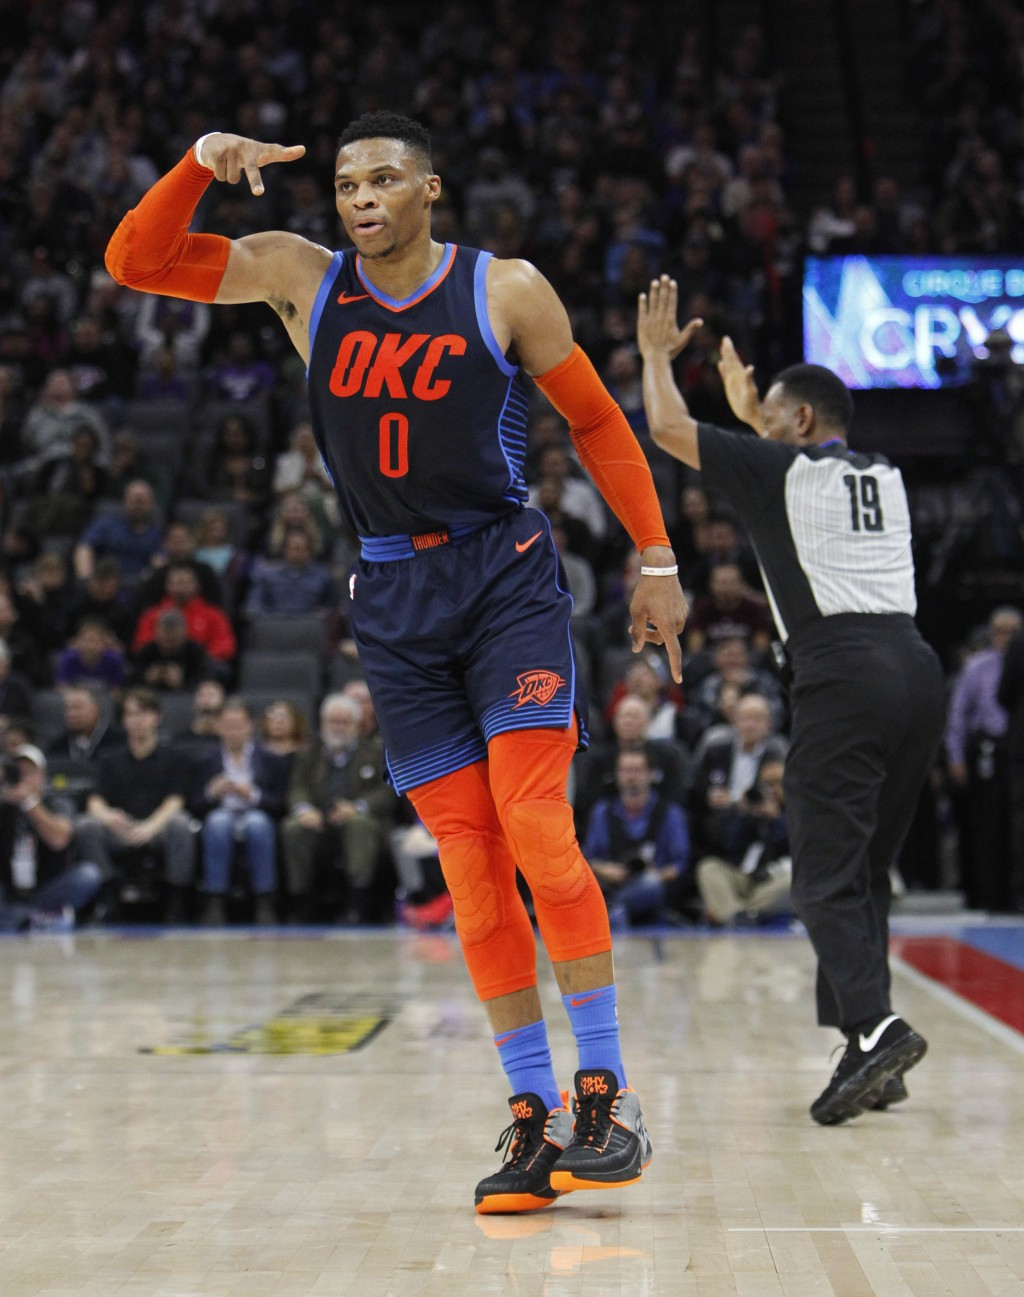 Oklahoma City Thunder guard Russell Westbrook (0) celebrates after hitting a 3-point basket against the Sacramento Kings during the first half of an N...